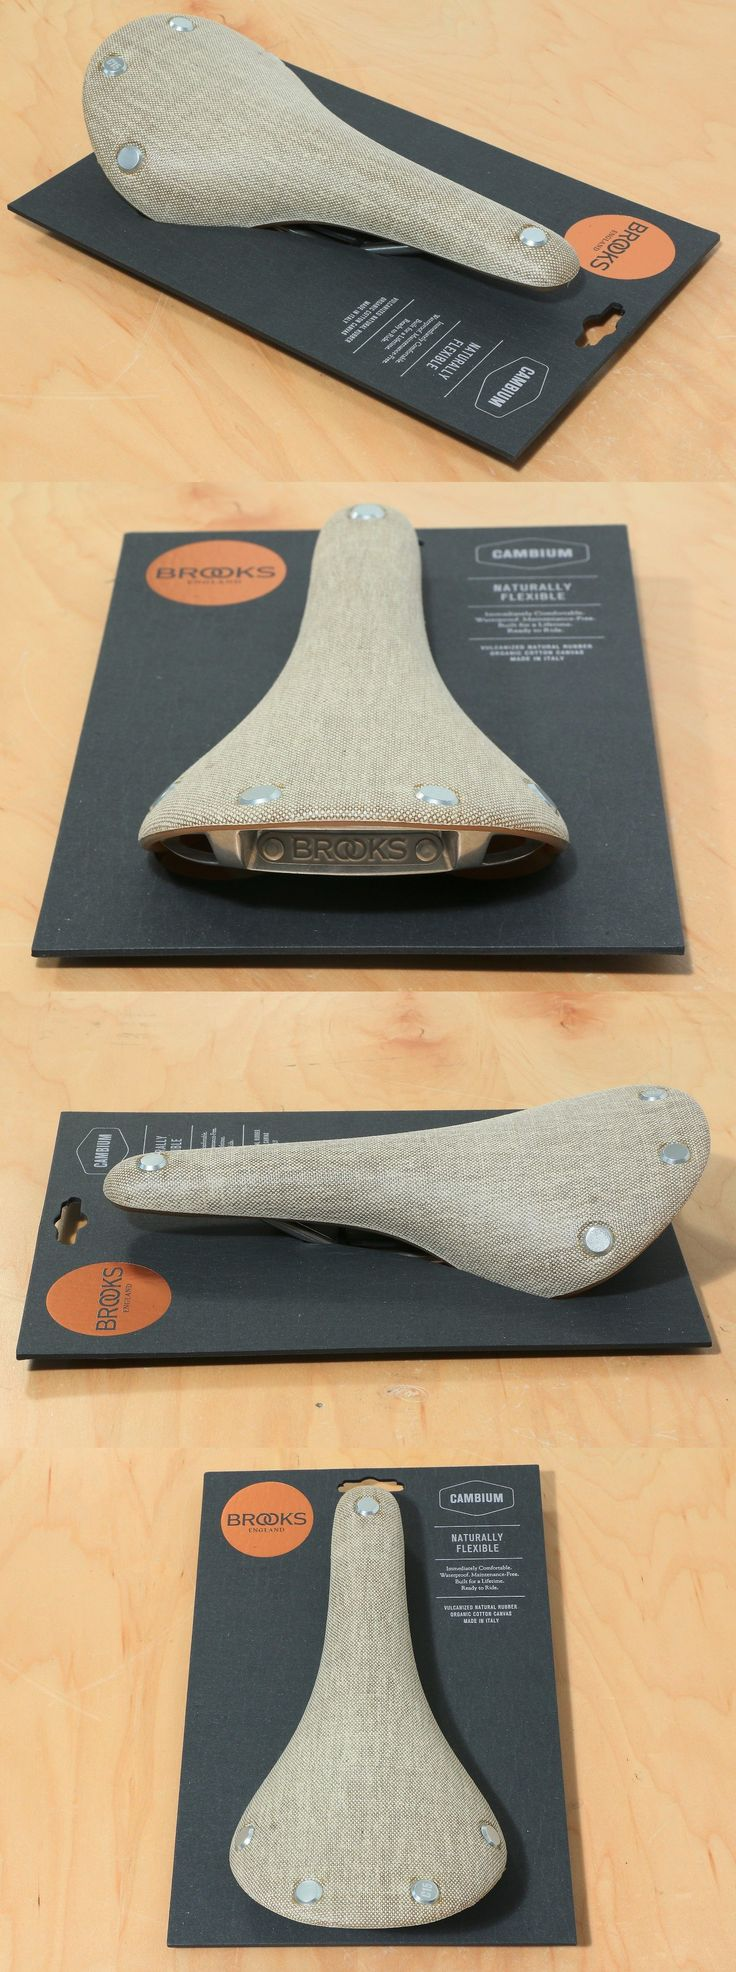 Saddles Seats 177822: Brooks Cambium C15 Saddle Natural Organic Cotton Steel Rail Road Men New In Box! -> BUY IT NOW ONLY: $100 on eBay!